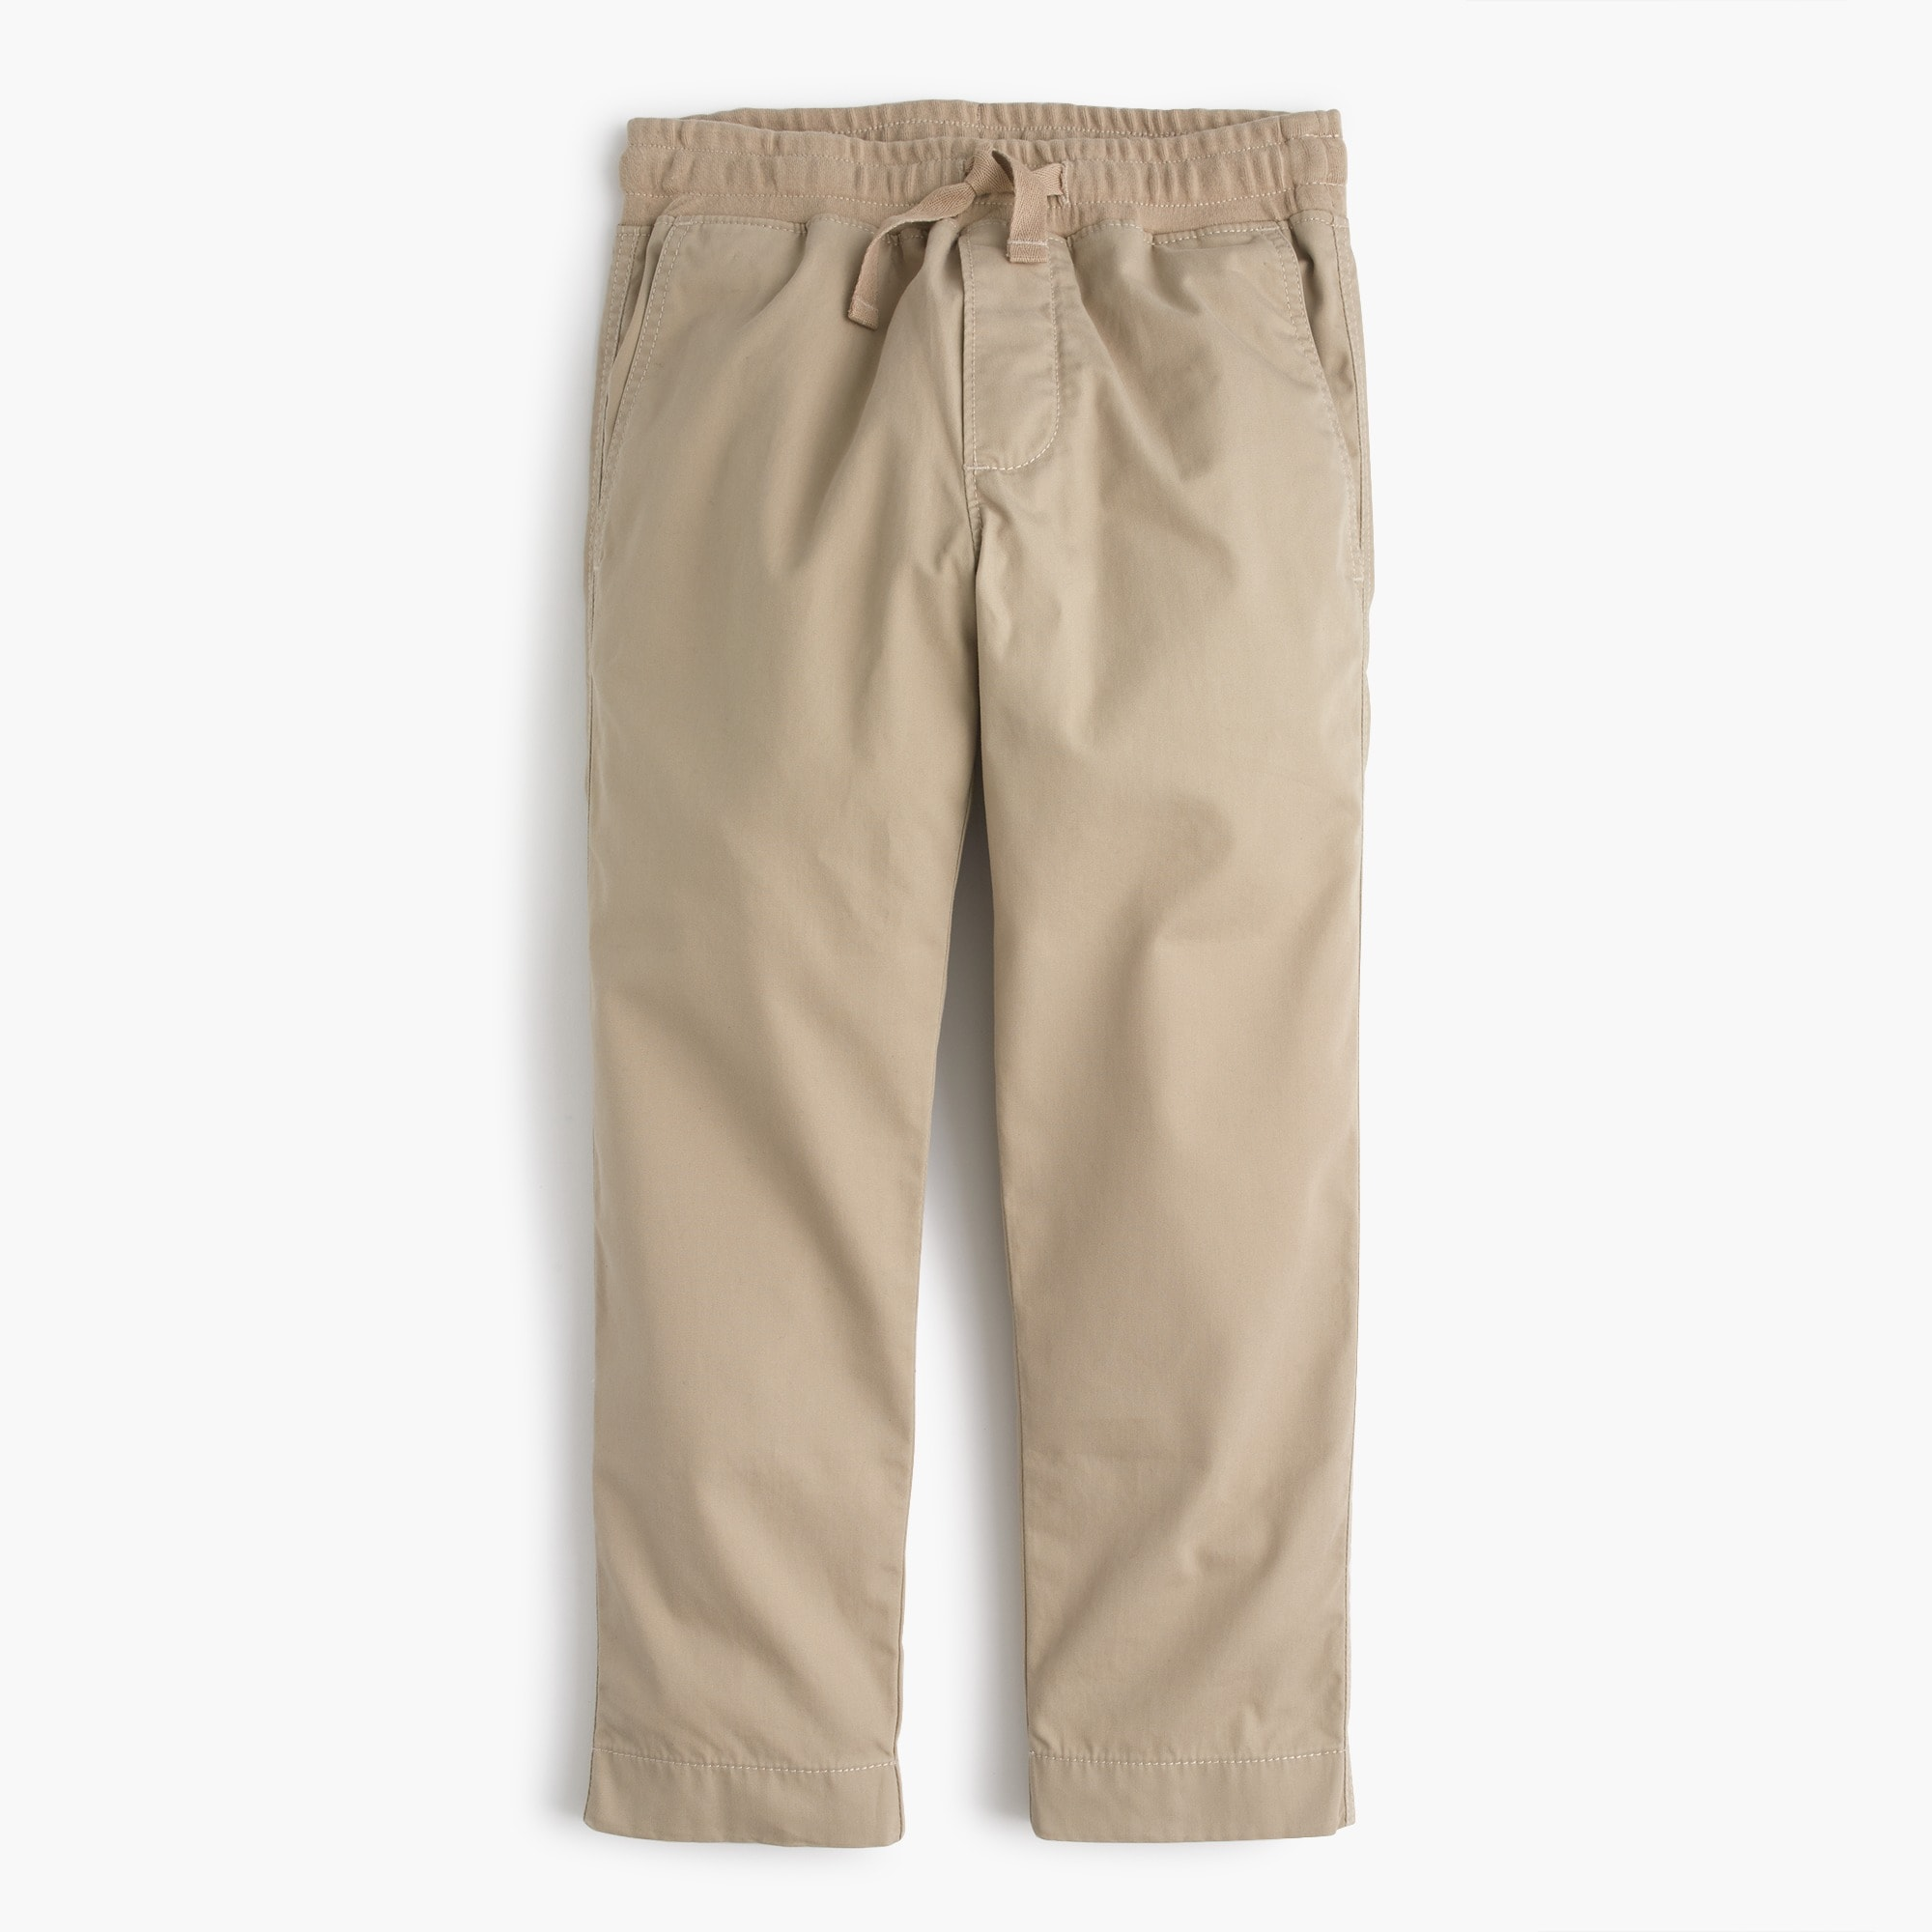 boys' lightweight chino pull-on pant with reinforced knees : boys' pants